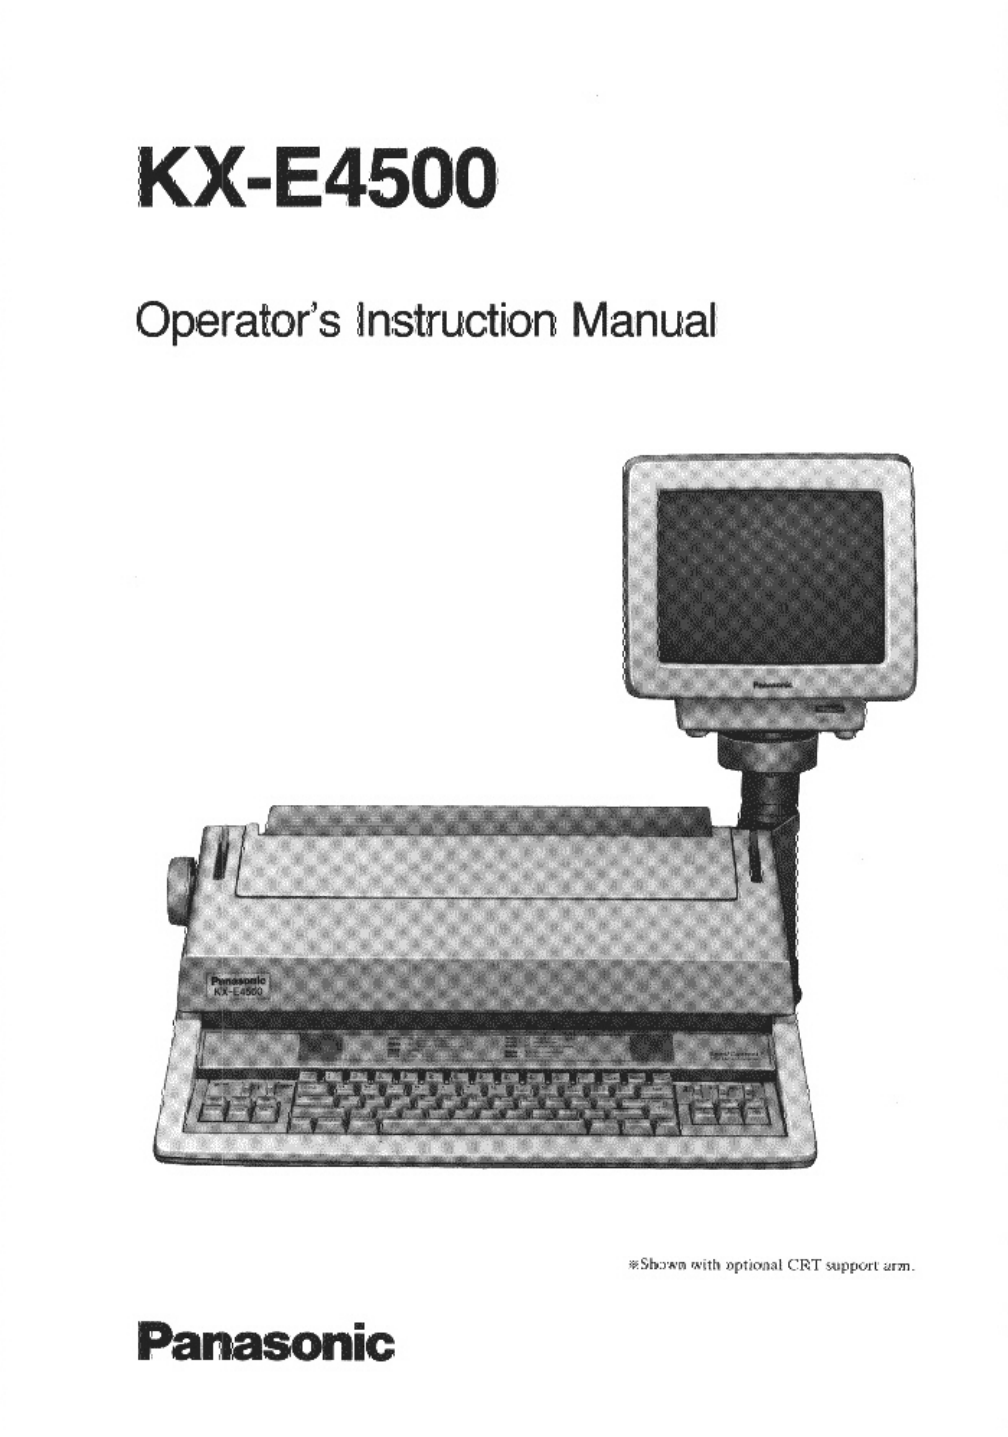 panasonic typewriter kx e4500 user guide manualsonline com rh office manualsonline com Panasonic Typewriter KX E-4020 Panasonic Typewriter Repair